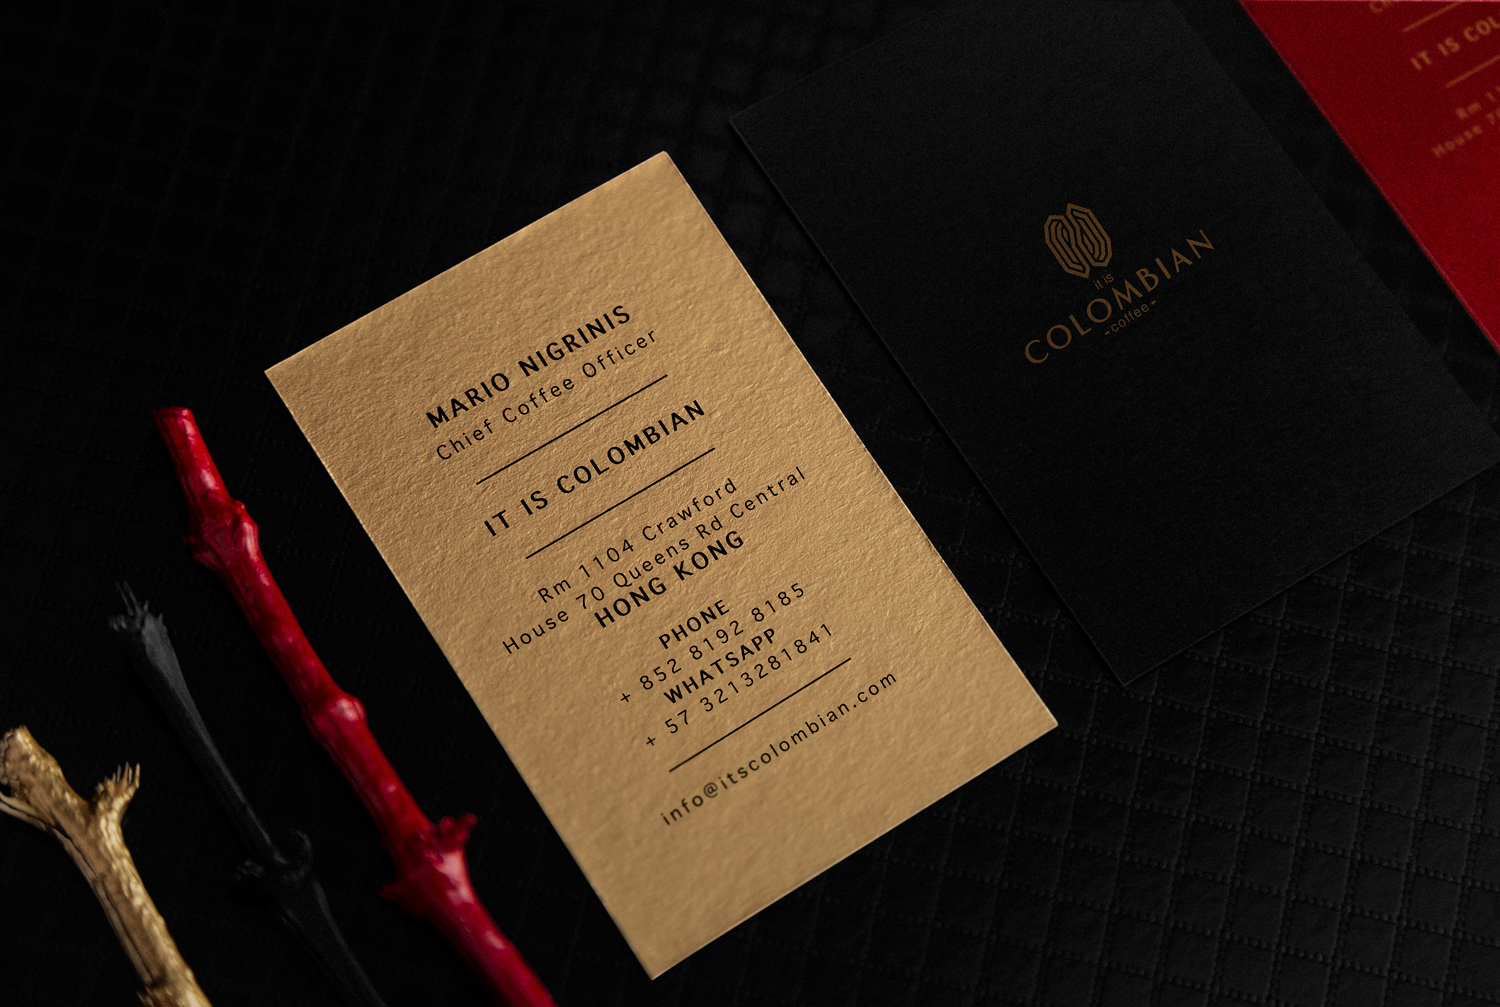 Colombian Premium Artisanal Coffee Brand Design and Packaging Design Commercialized in Hong Kong / World Brand Design Society